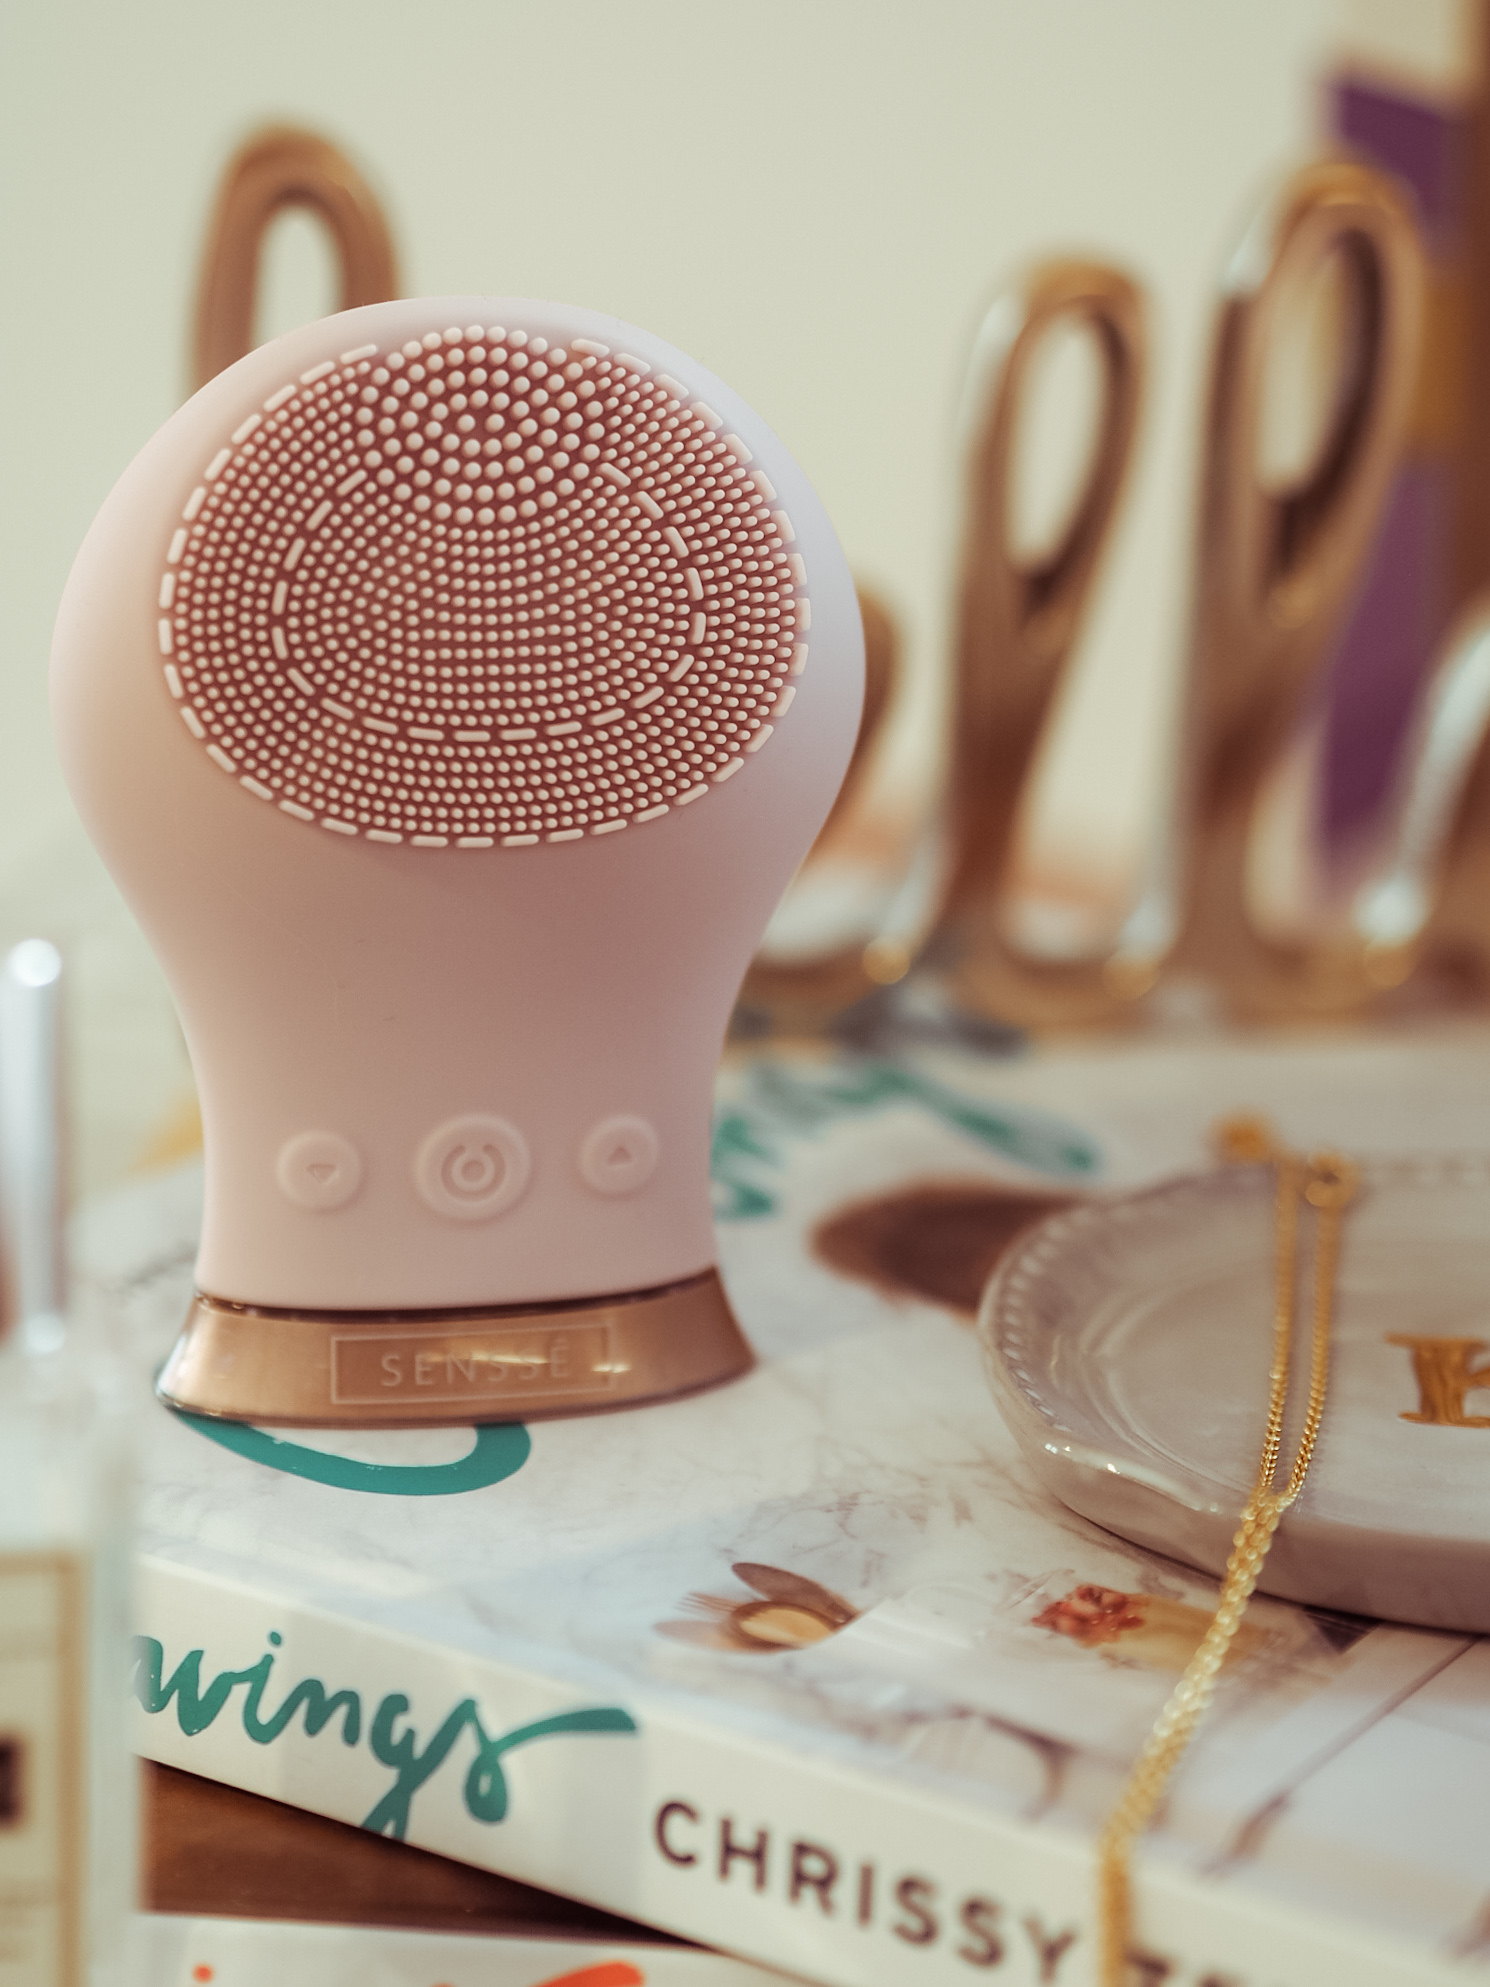 Sensse Facial Cleansing Brush - LemonaidLies Gift guide